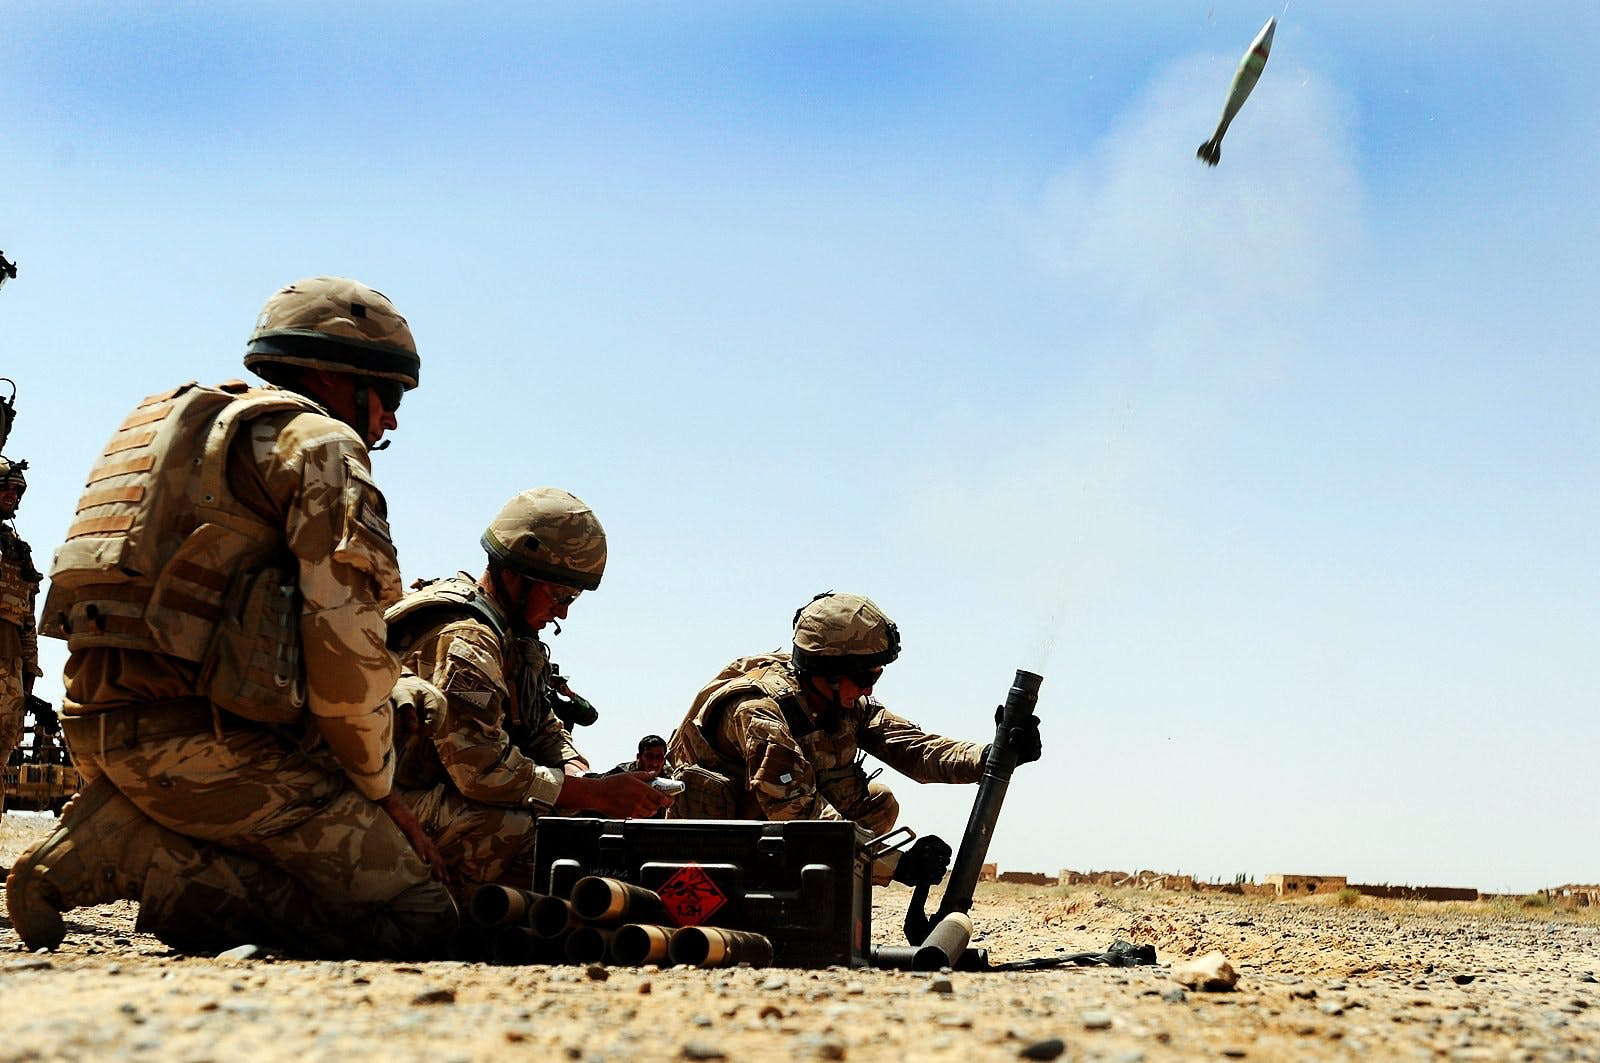 British Army to scrap old infantry weapon systems